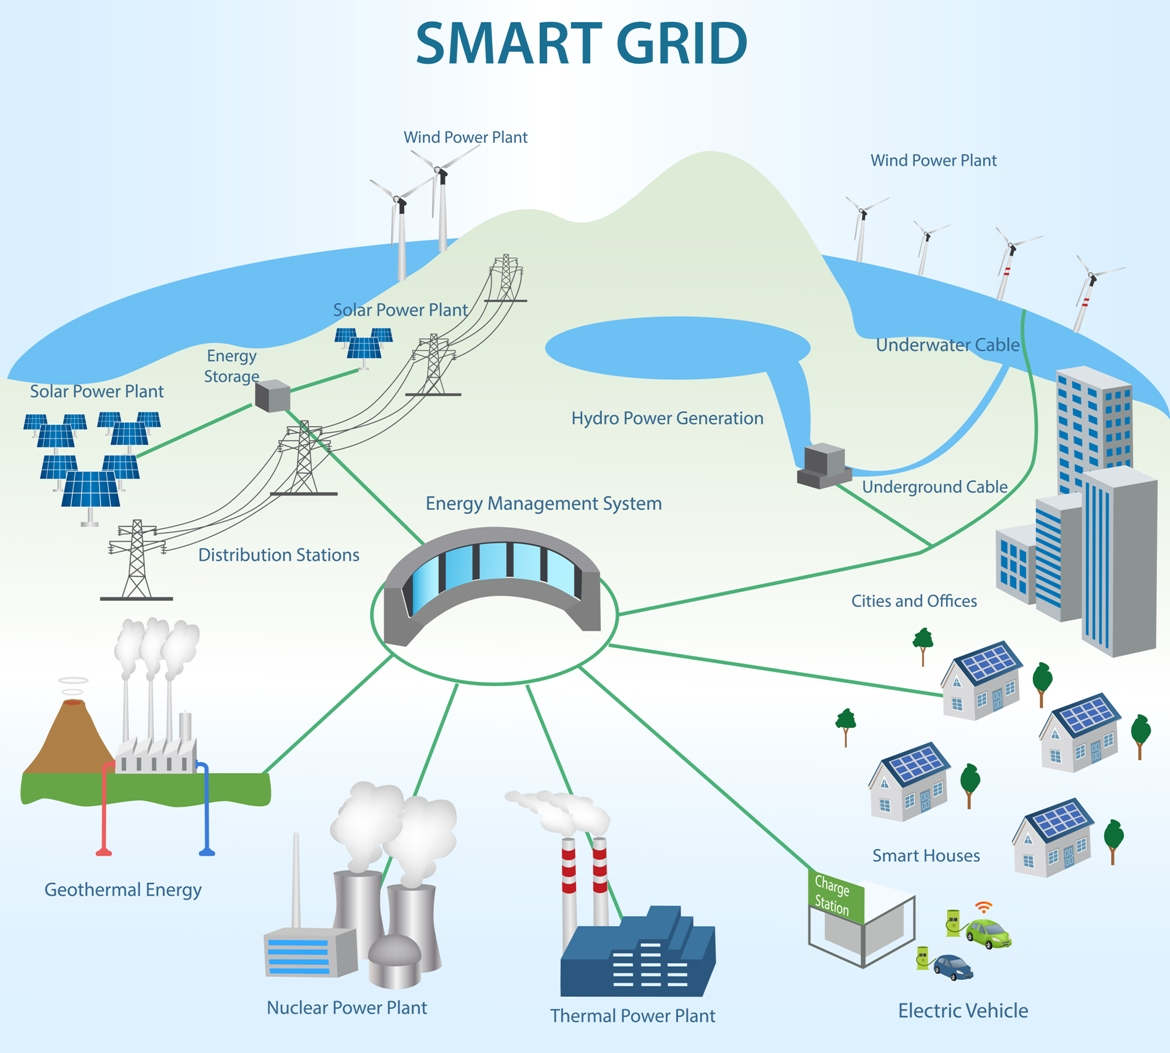 How Secure Is Our Smart Grid?